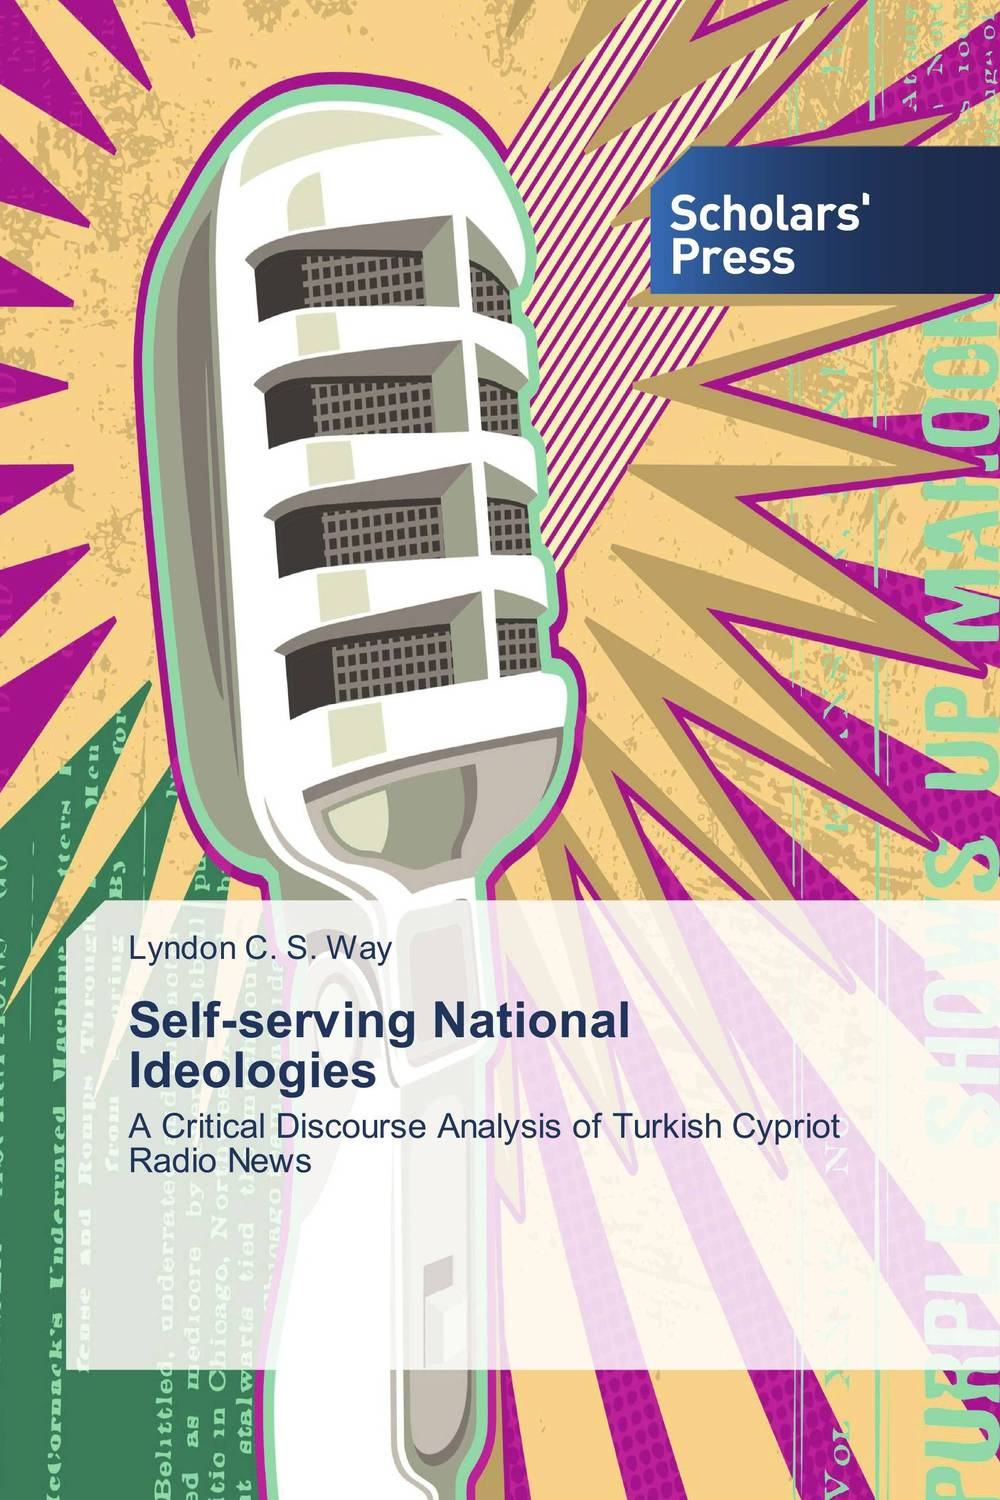 Self-serving National Ideologies temporal processing of news